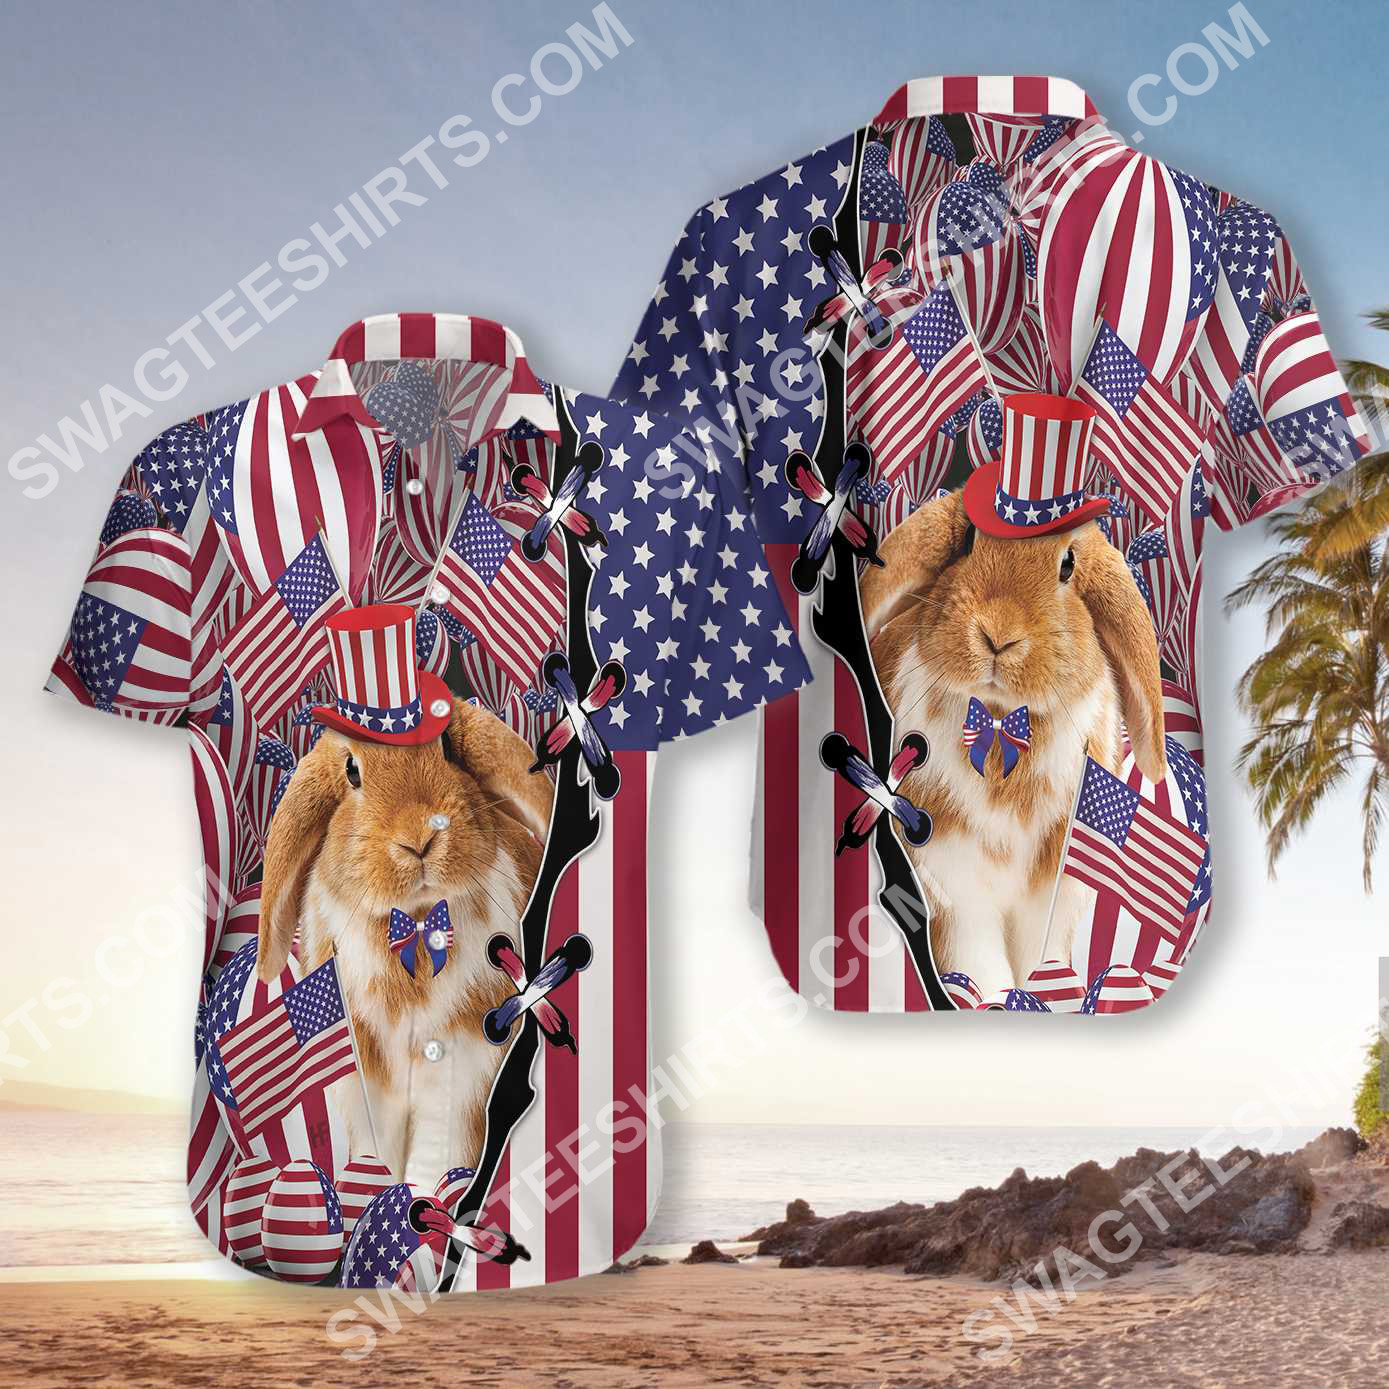 happy easter day america flag all over printed hawaiian shirt 3(1)